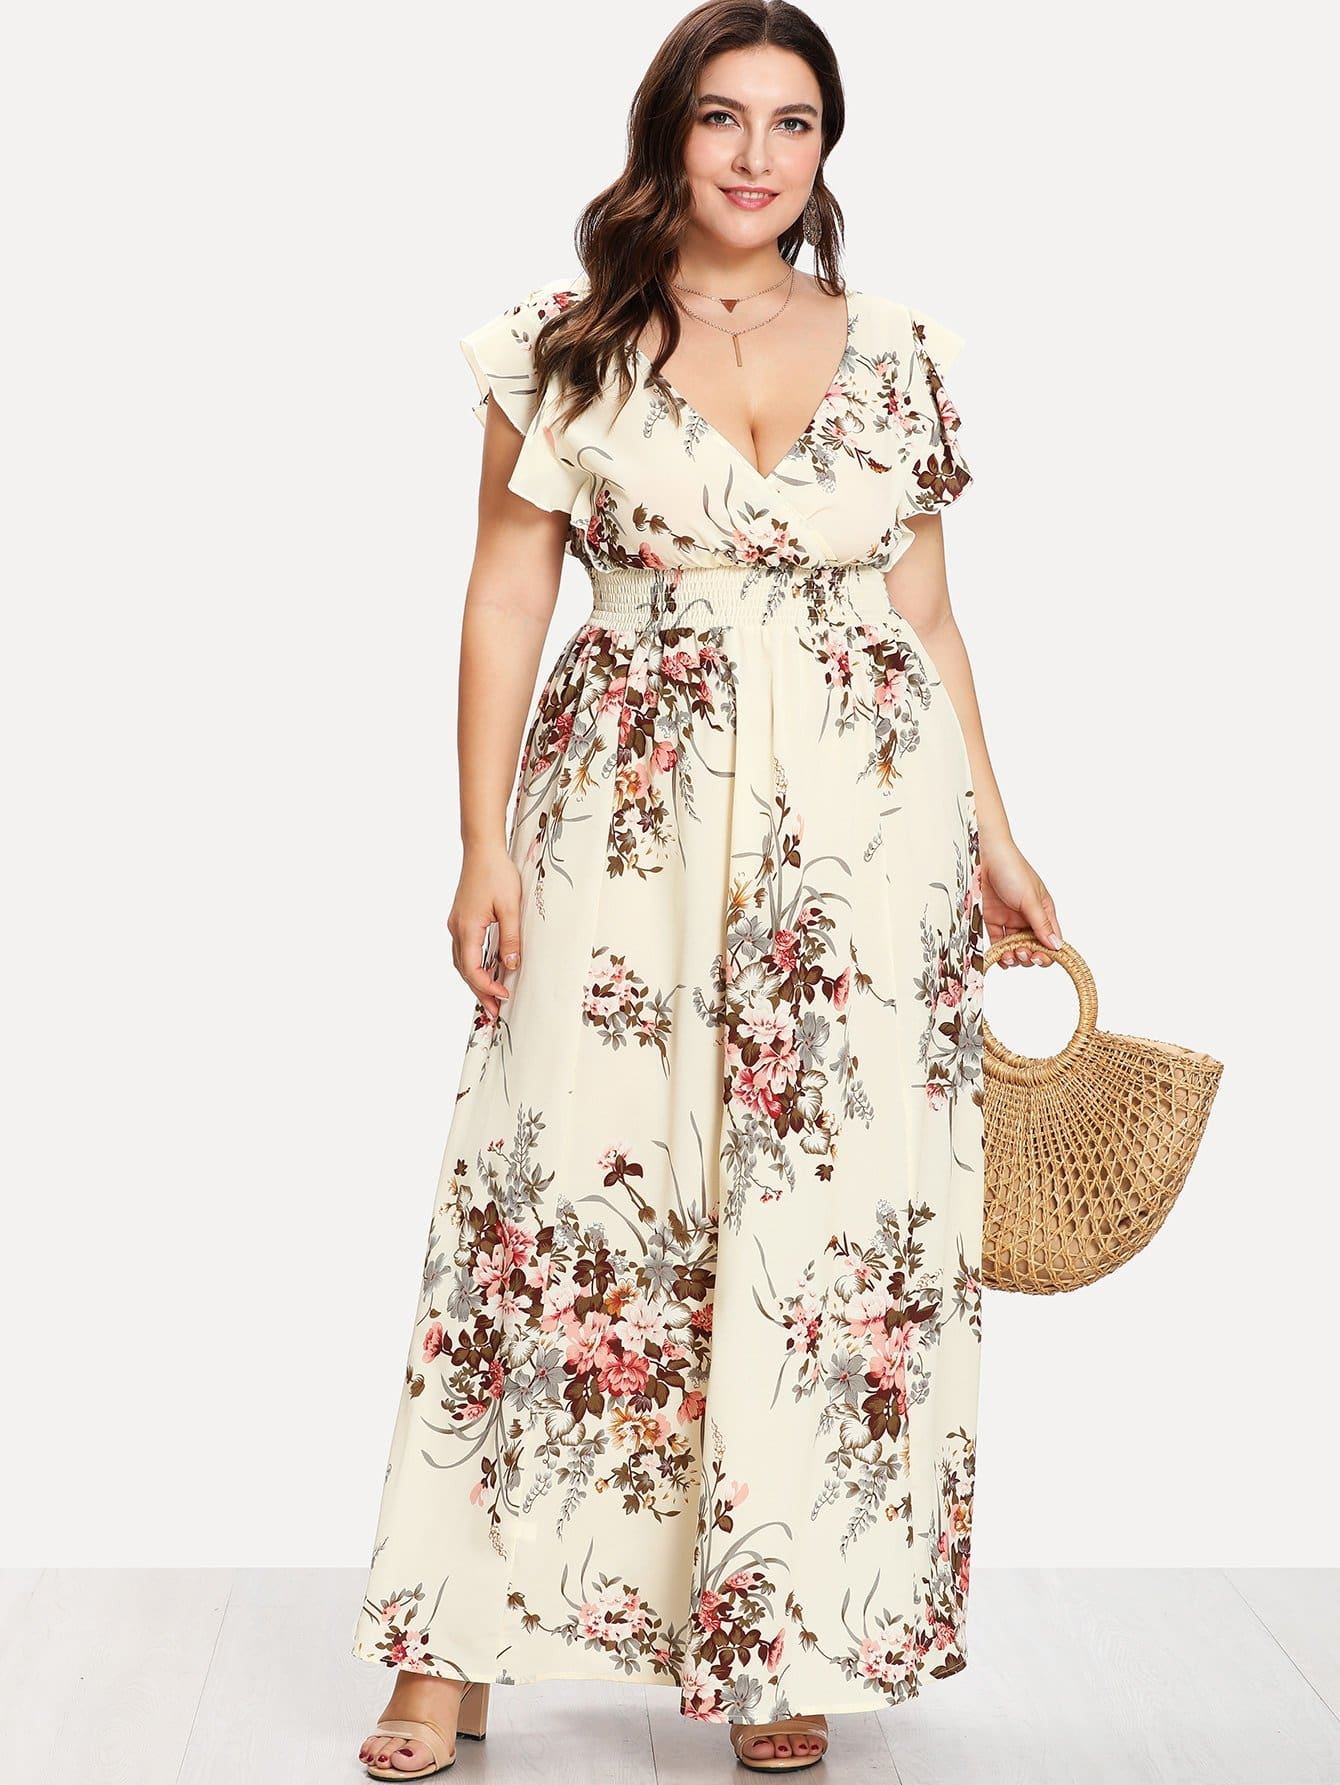 Flounce Trim Shirred Waist Floral Dress bohemian off the shoulder floral shirred flounce maxi dress for women